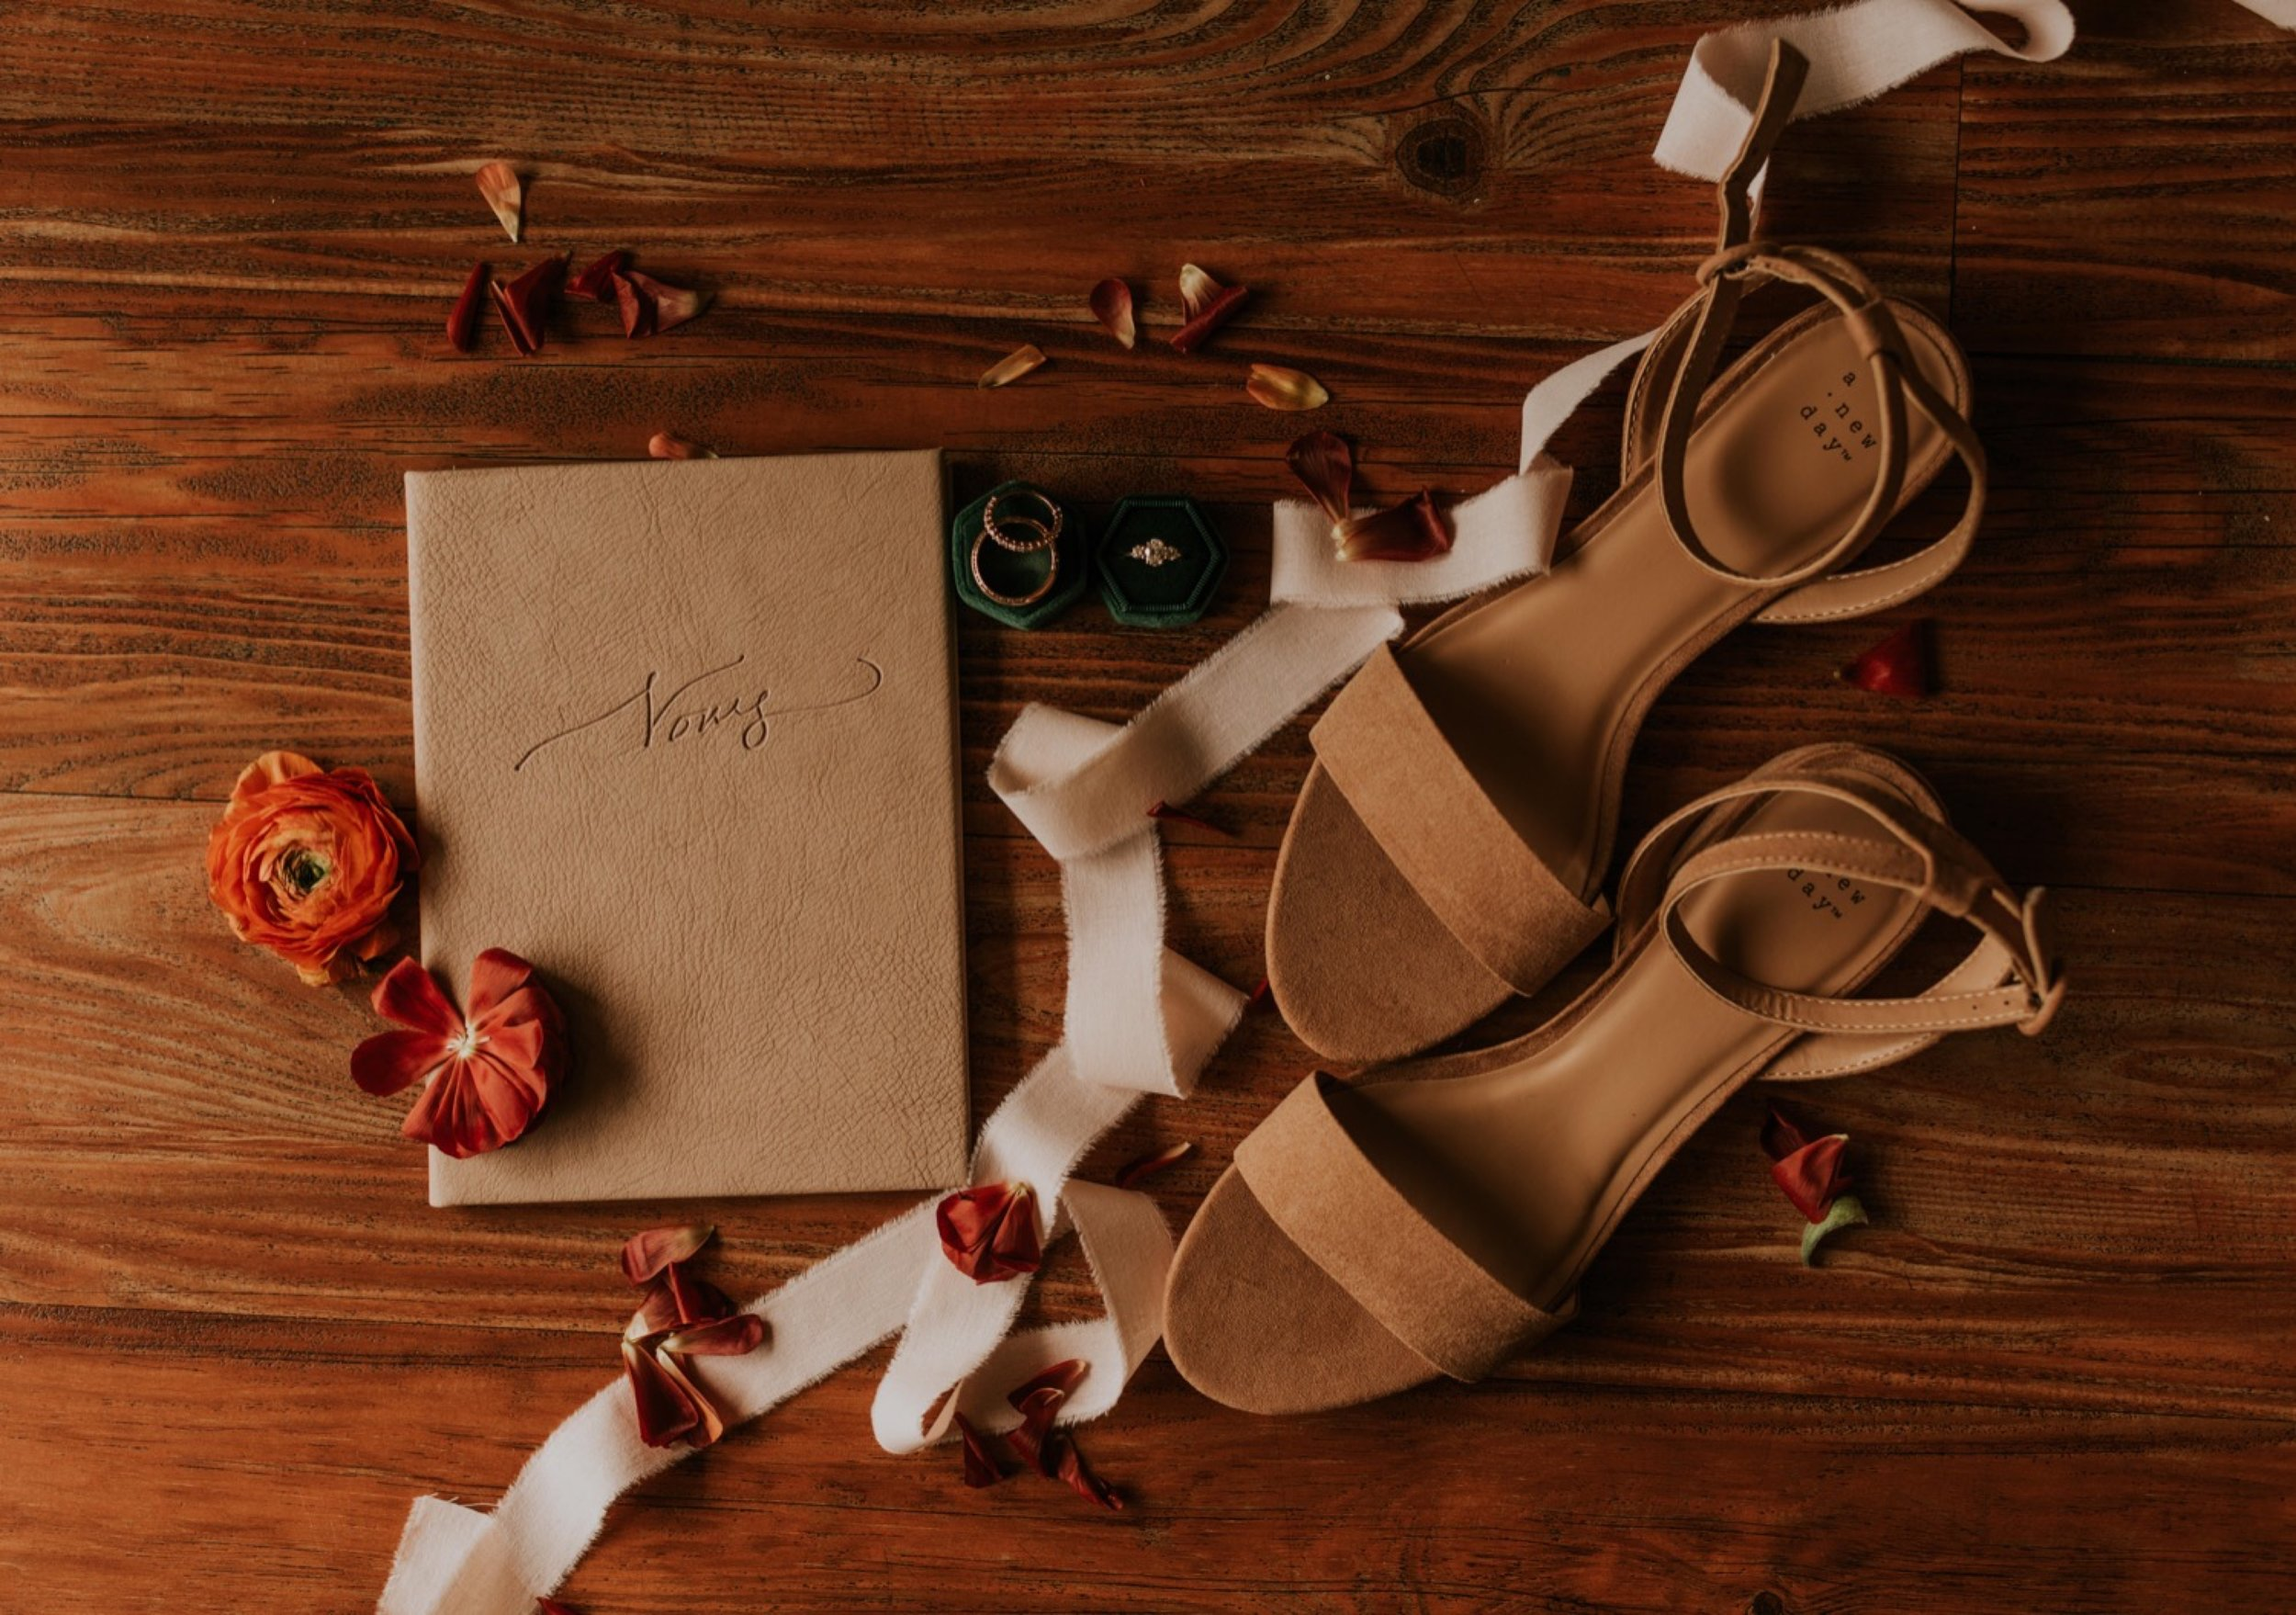 Santa Barbara Wedding at the Carousel House | Wedding Flatlay Details | Carrie Rogers Photography